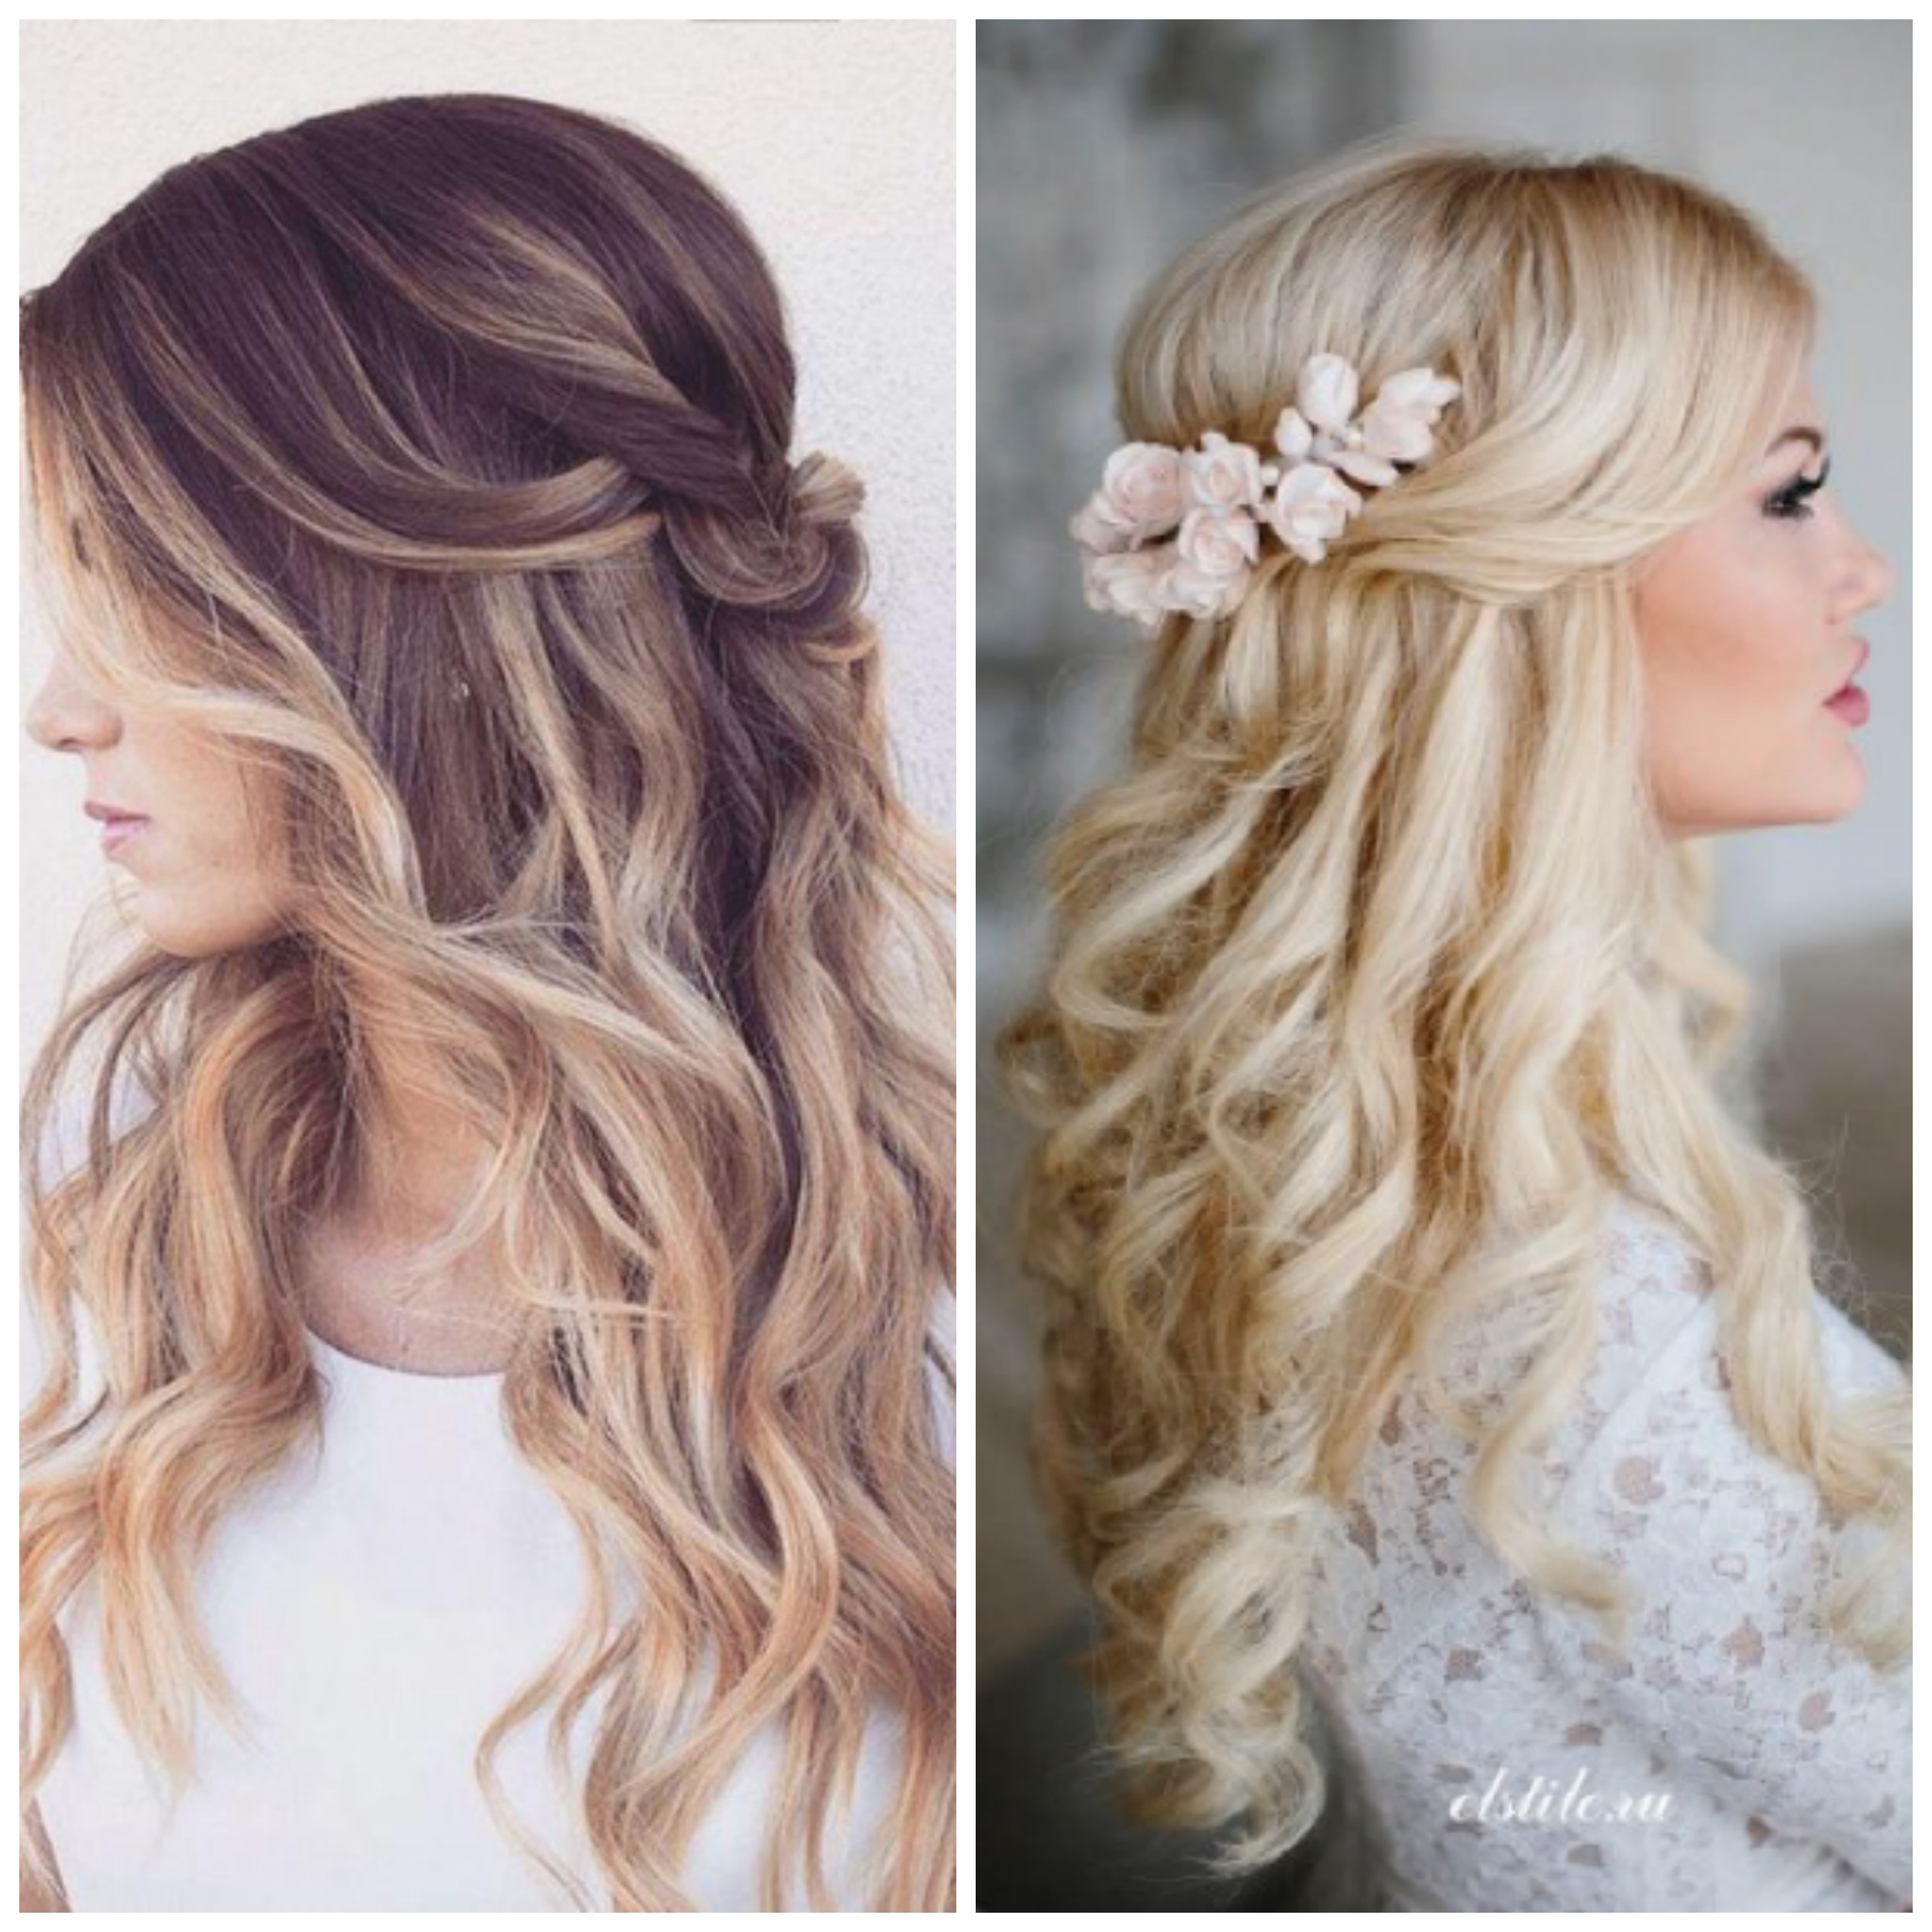 Beach Wavy Wedding Hairstyles: 5 Bridal Hairstyles For Your Wedding Day